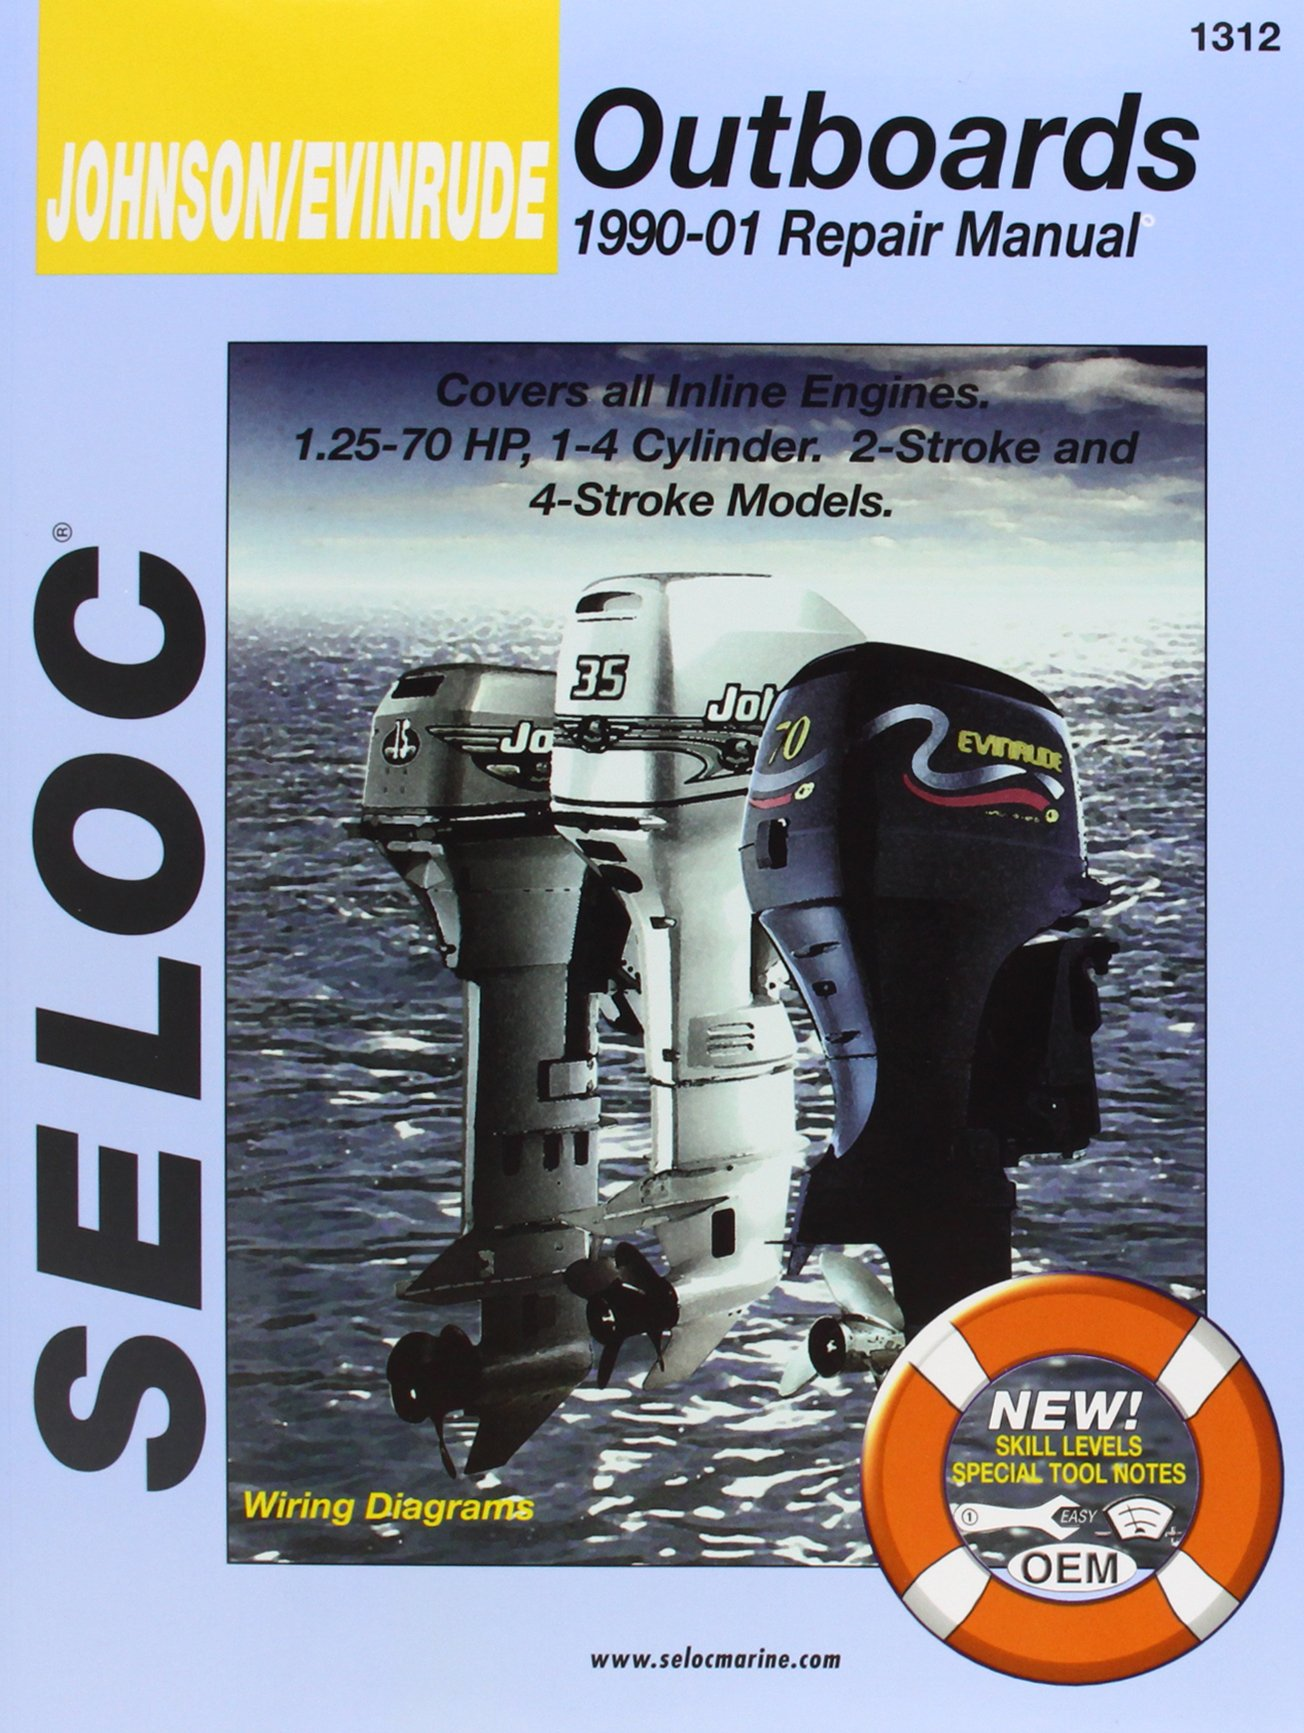 Johnson/Evinrude Outboards, All In-Line Engines, 2-4 Stroke, 1990-01 (Seloc's Johnson/Evinrude Outboard Tune-Up and Repair Manual) by Brand: Delmar Cengage Learning